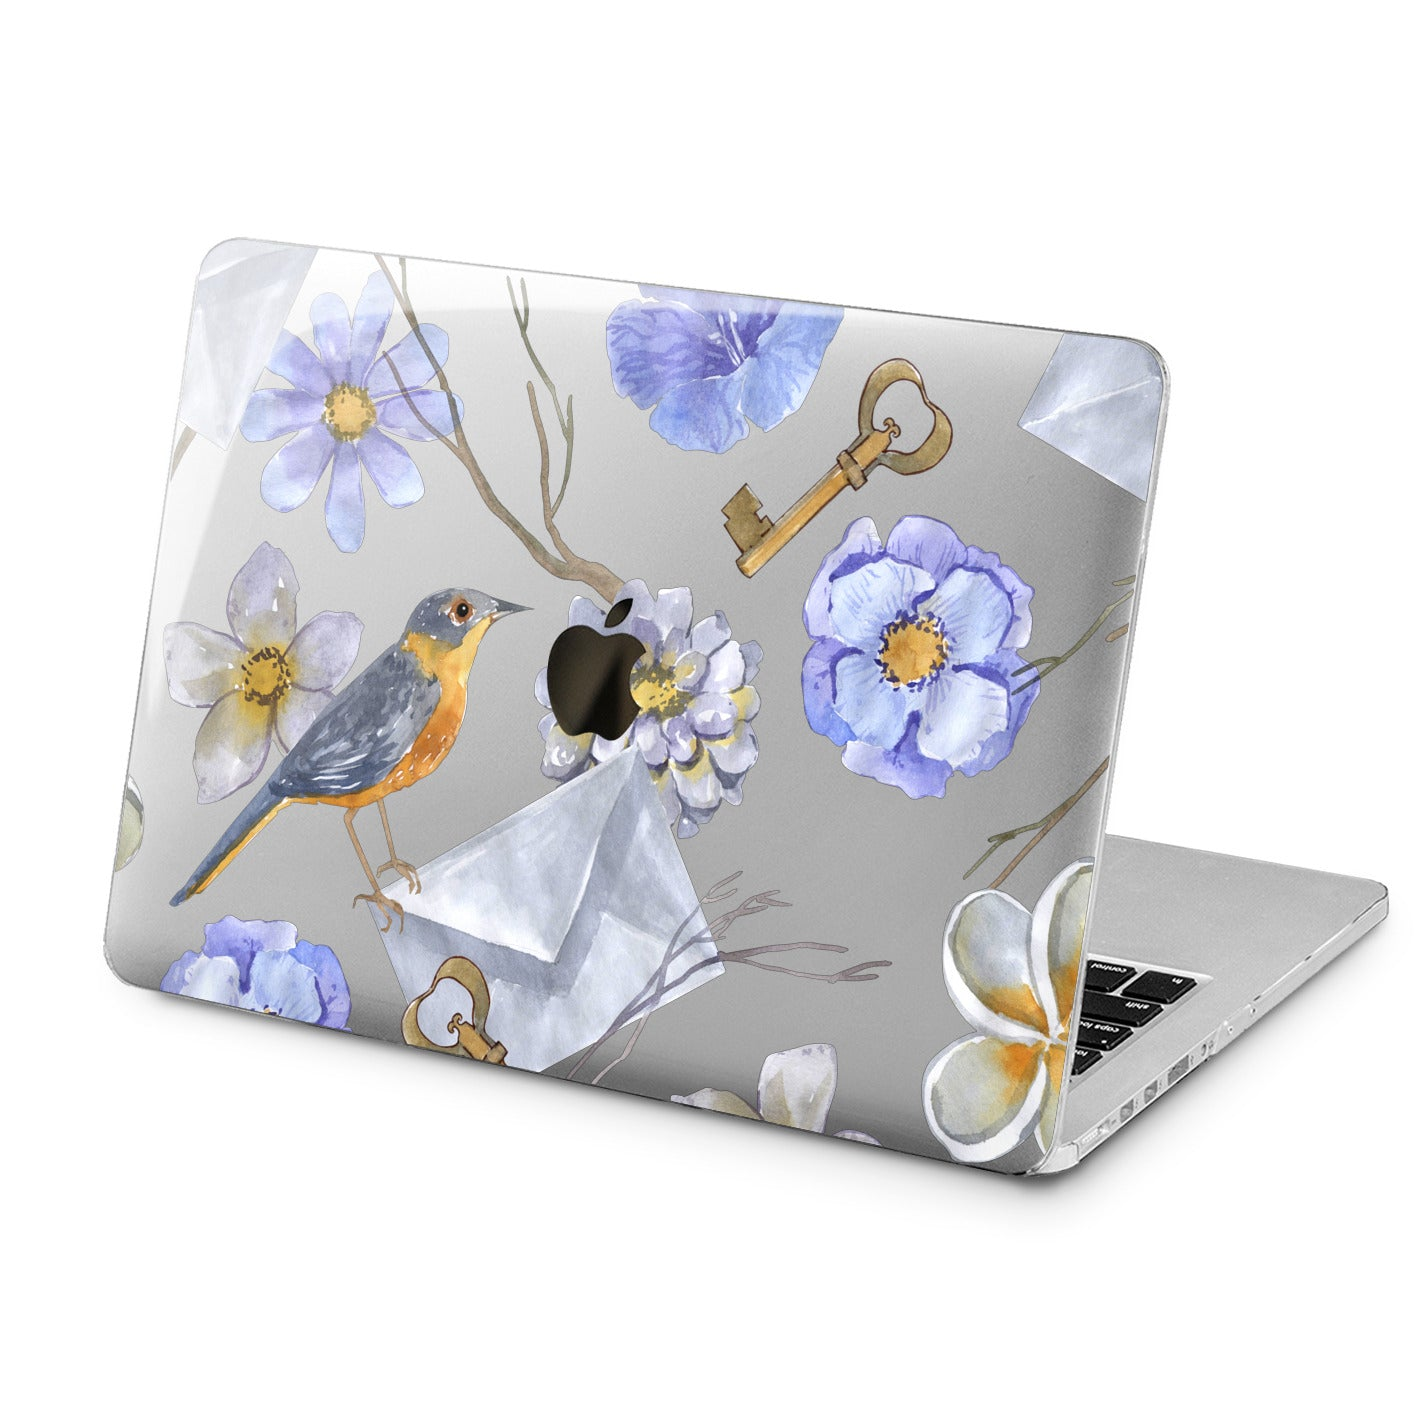 Lex Altern Lex Altern Floral Bird Case for your Laptop Apple Macbook.